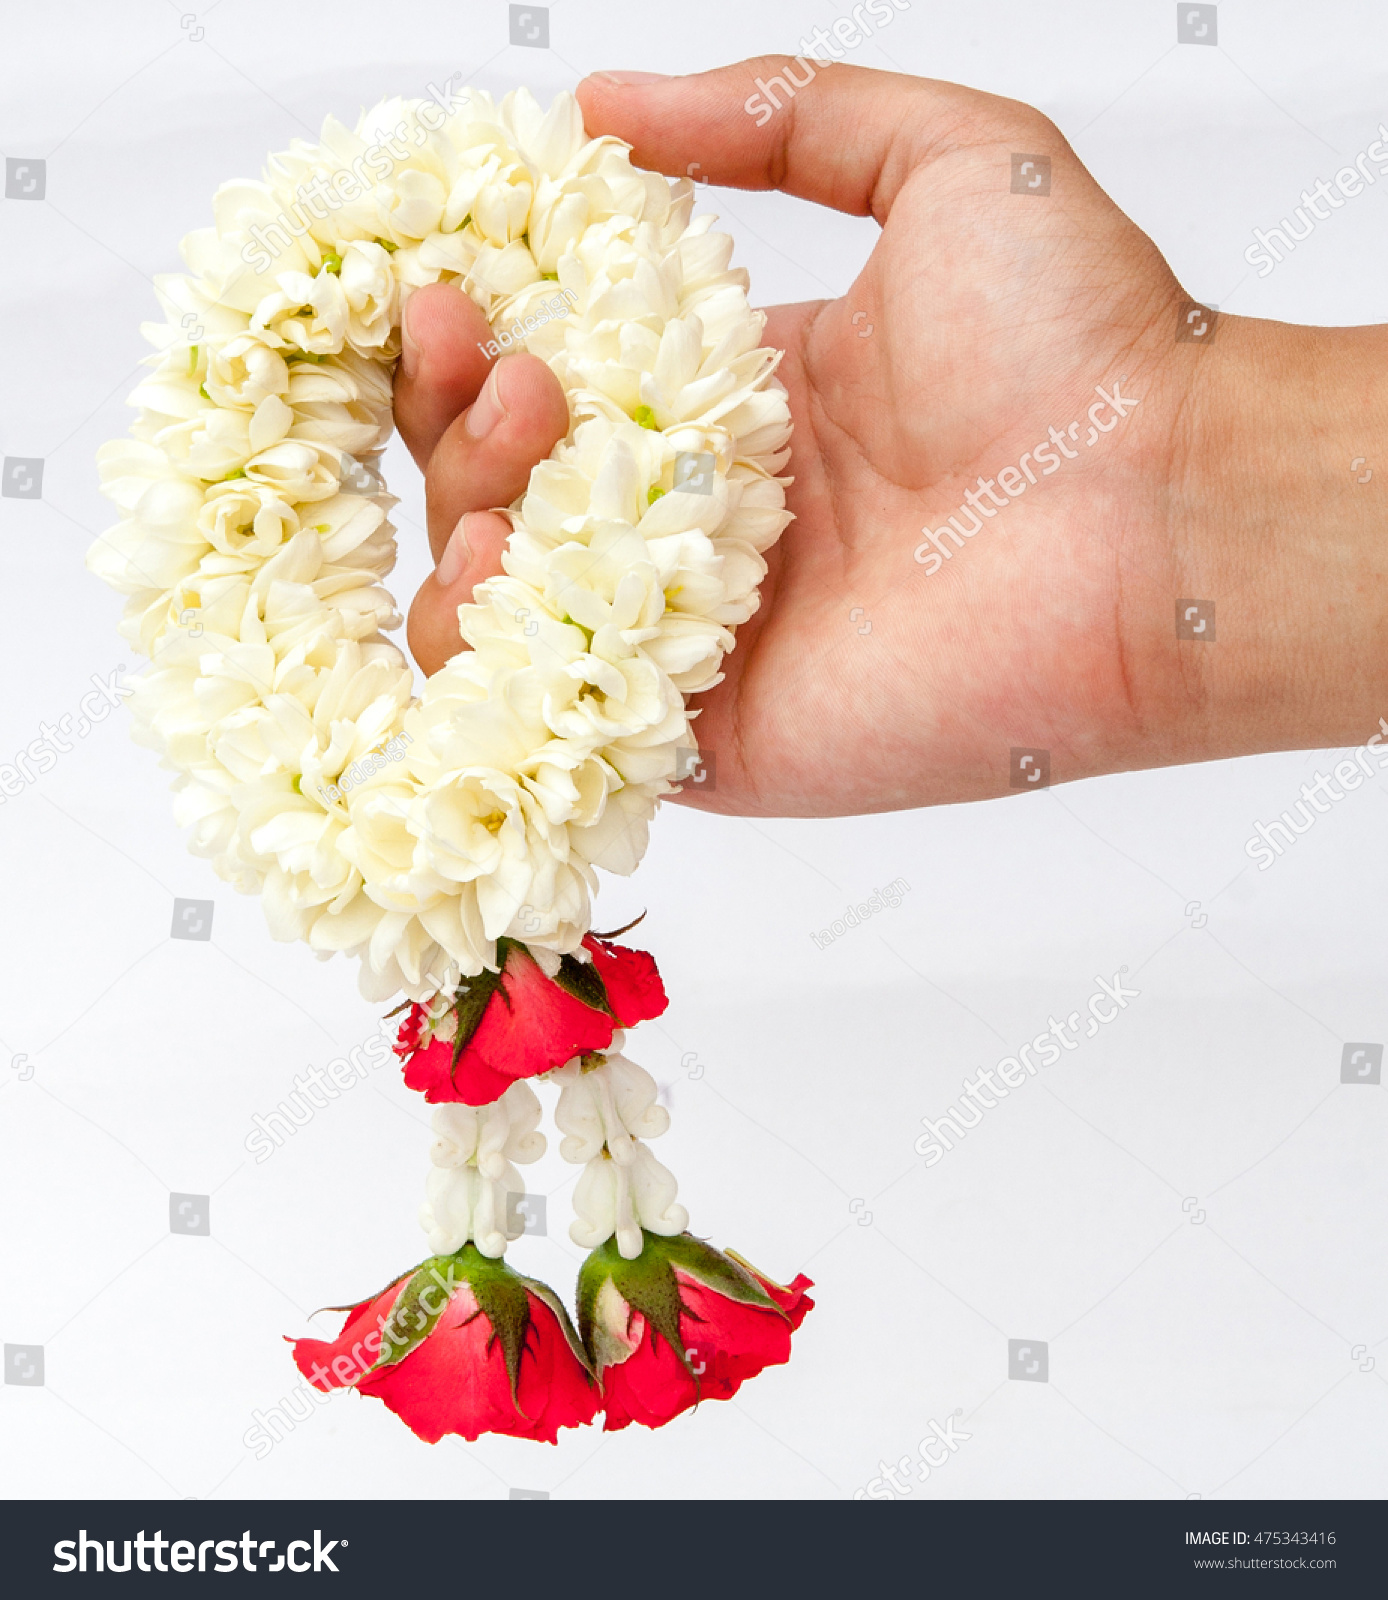 Royalty Free Hand Holding A Flower Garland With 475343416 Stock